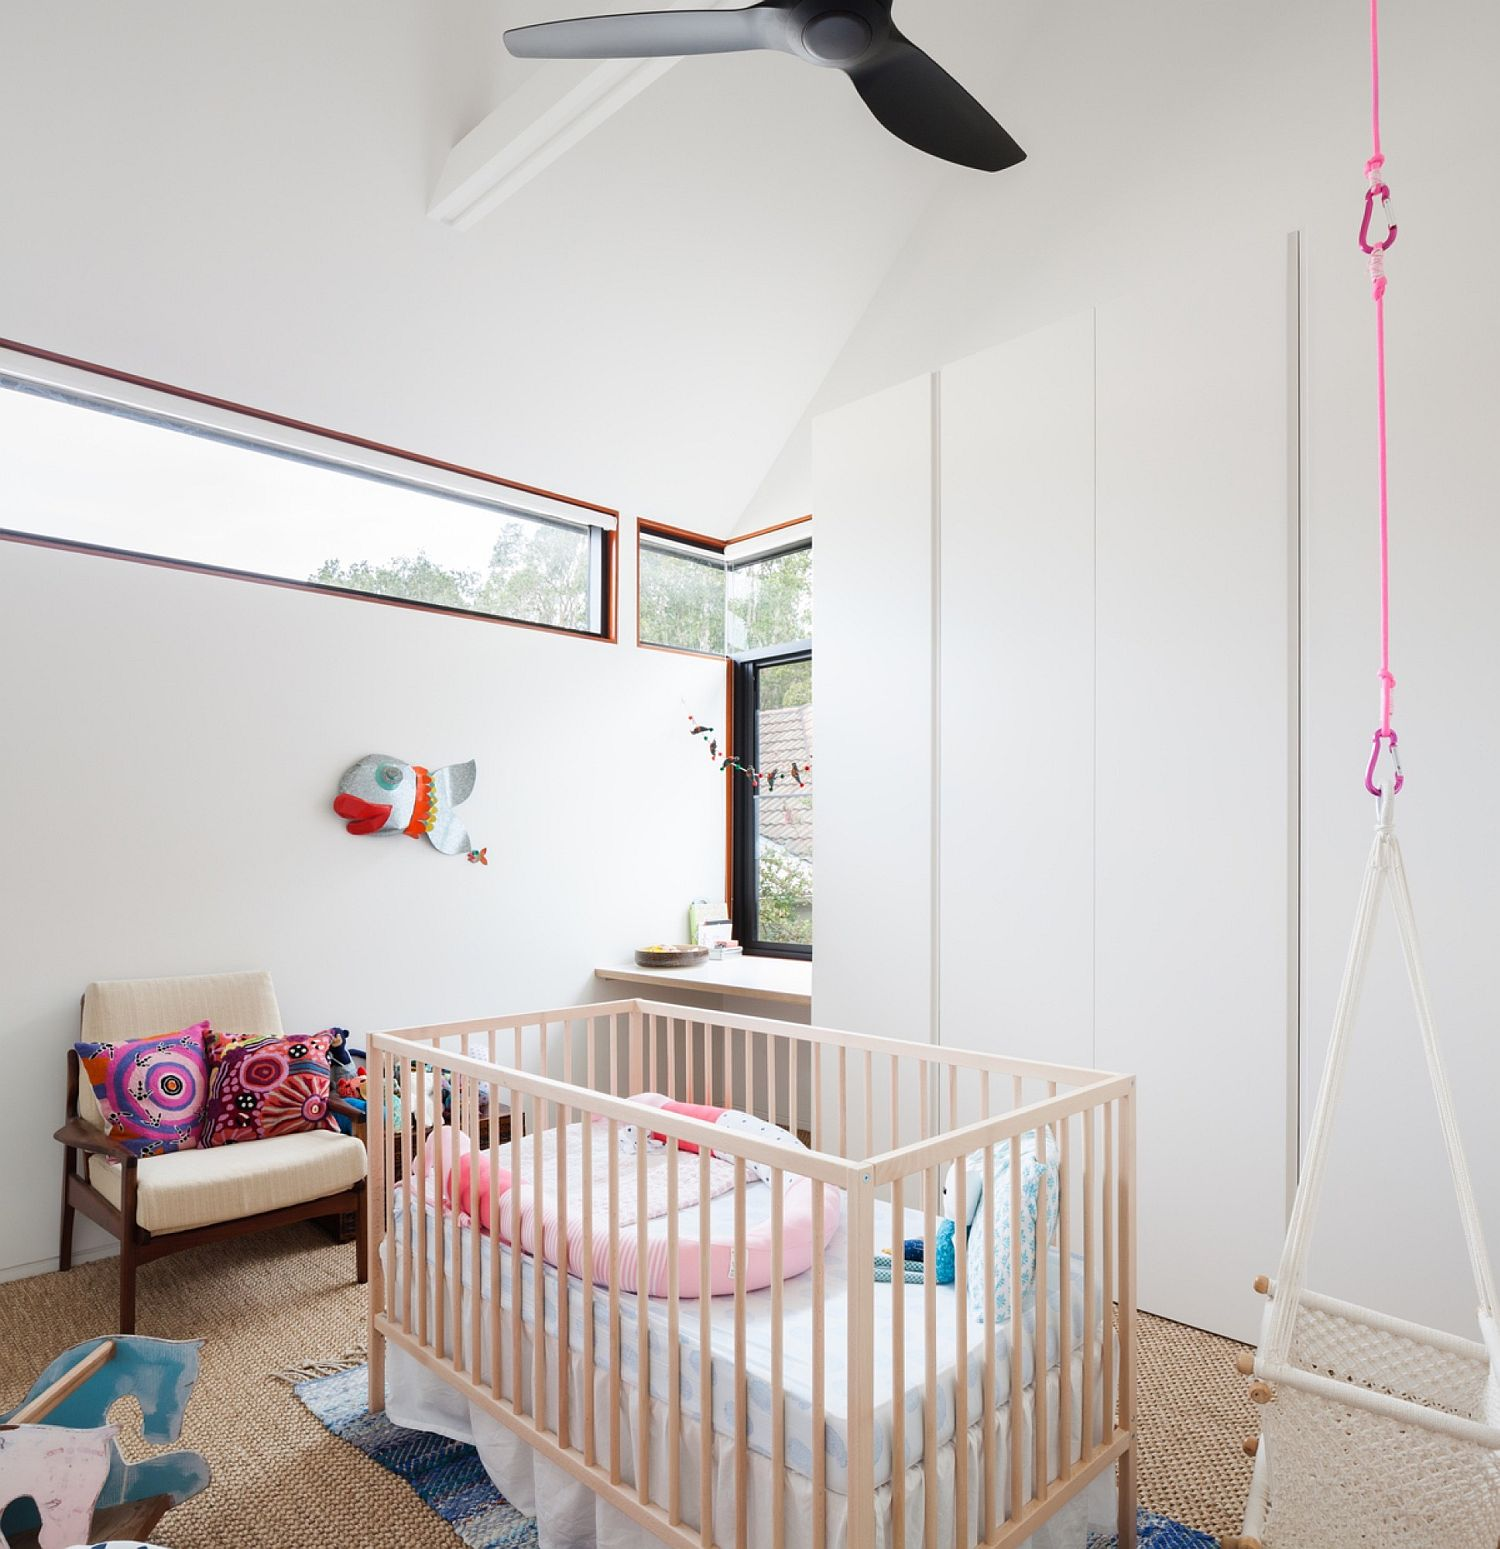 Modern nursery in white with gabled ceiling and ample natural light